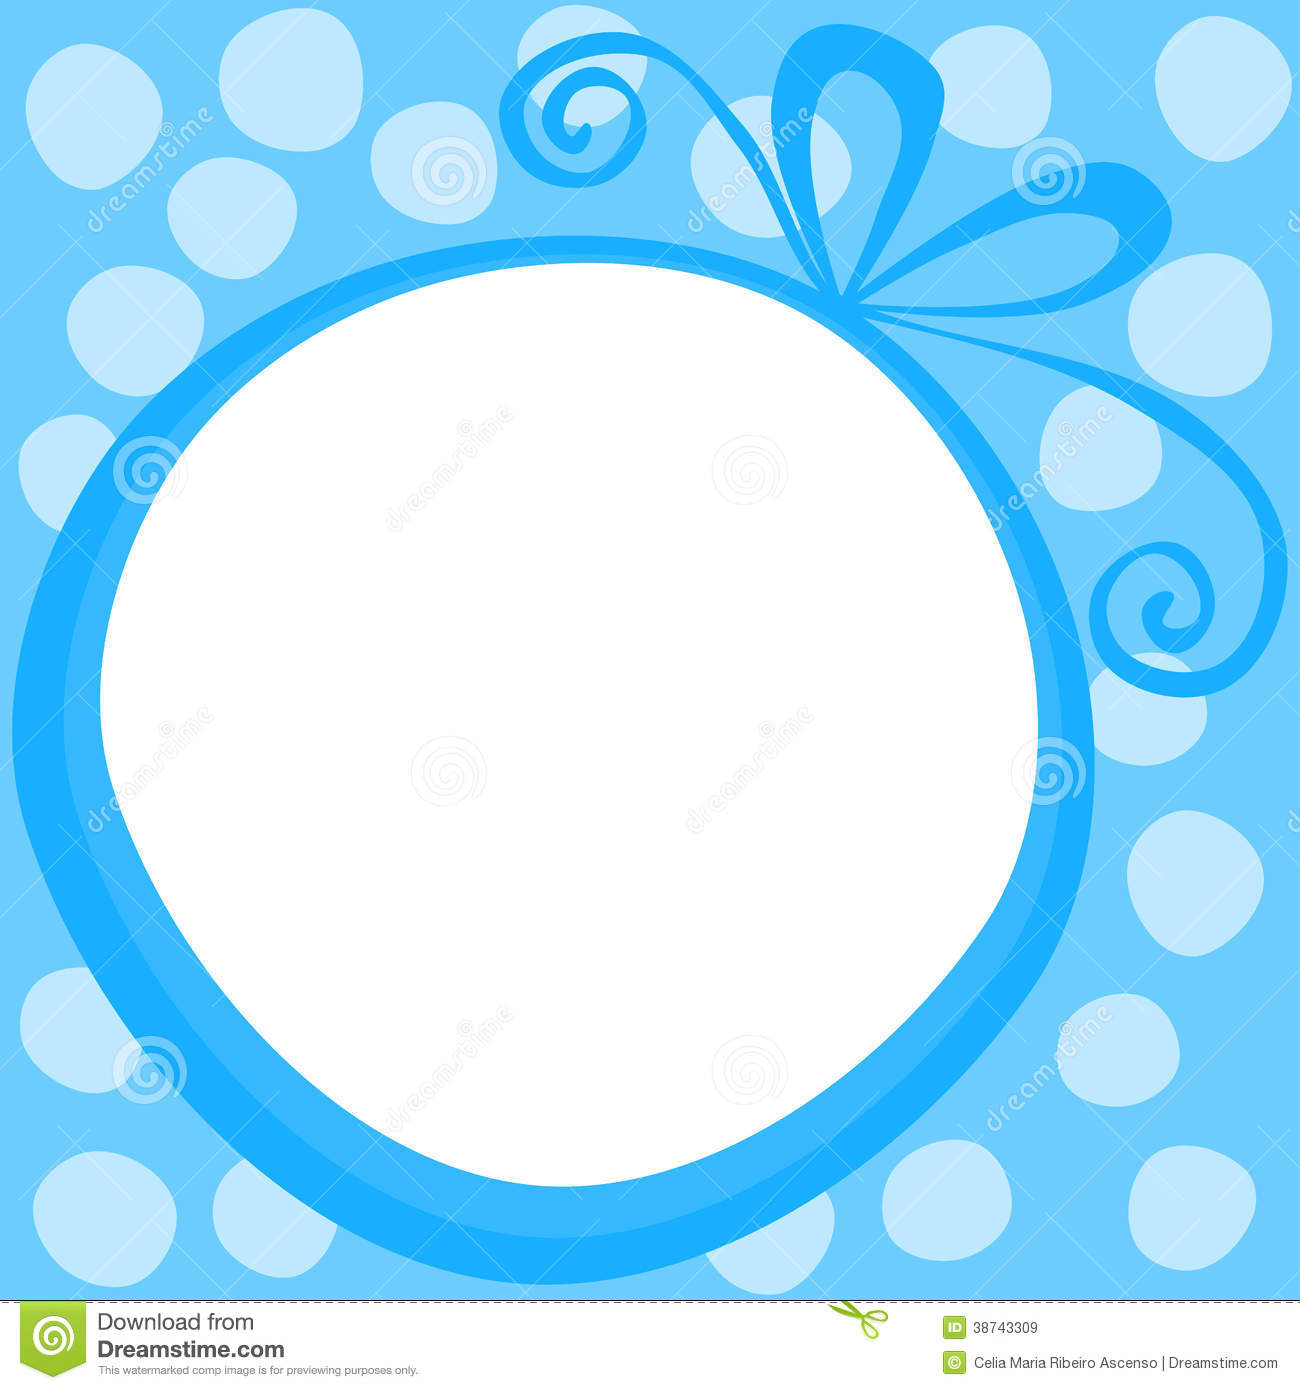 Red gift bows border with clipping path for easy background removing - Round Gift Frame Border Royalty Free Stock Images